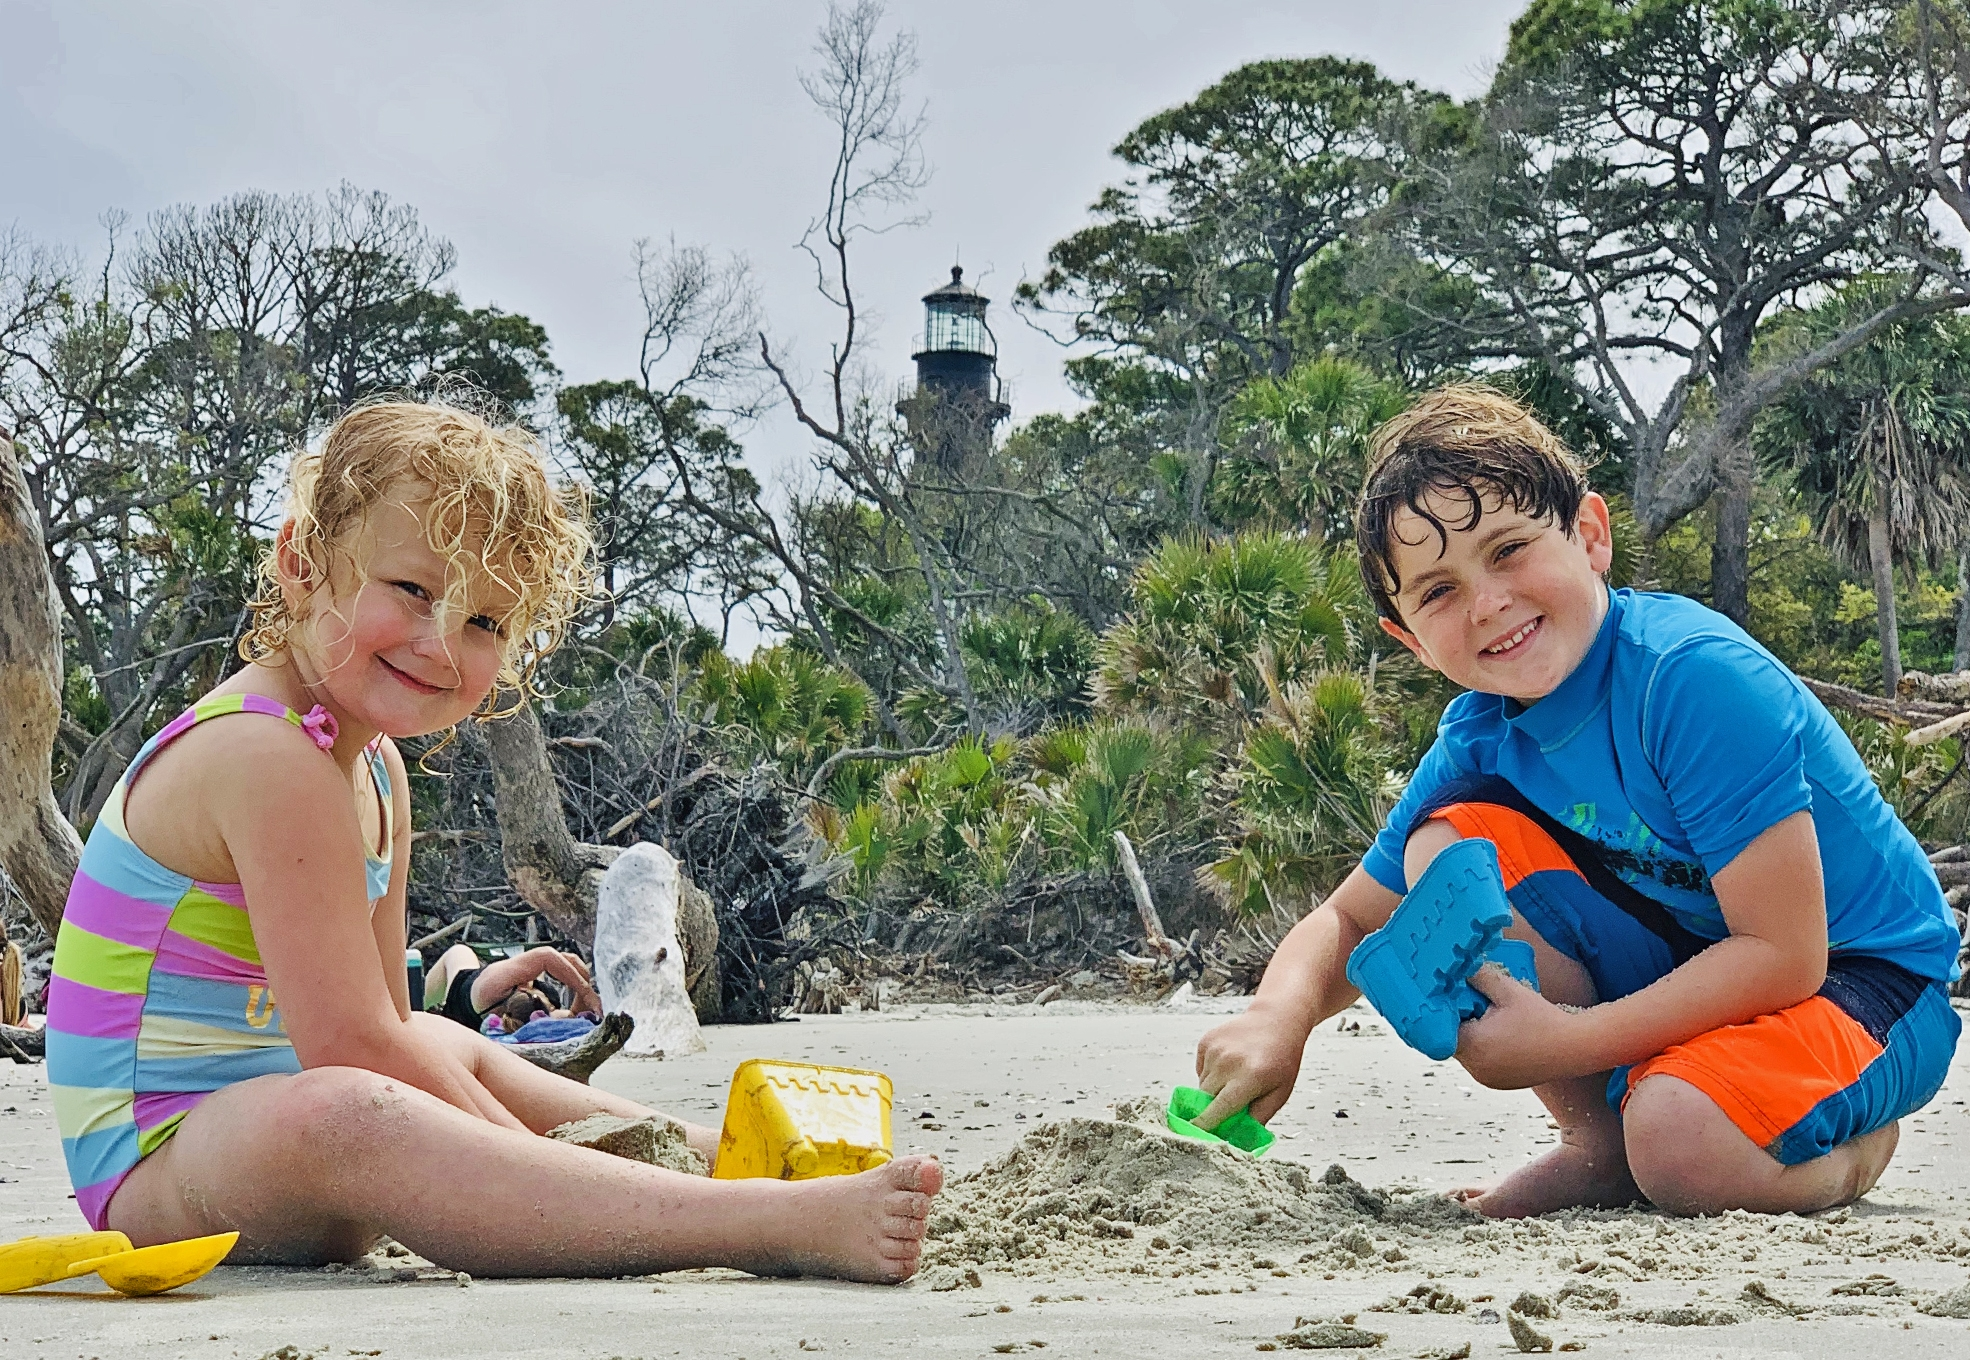 Hunting Island reopens this Friday with new hours and rules